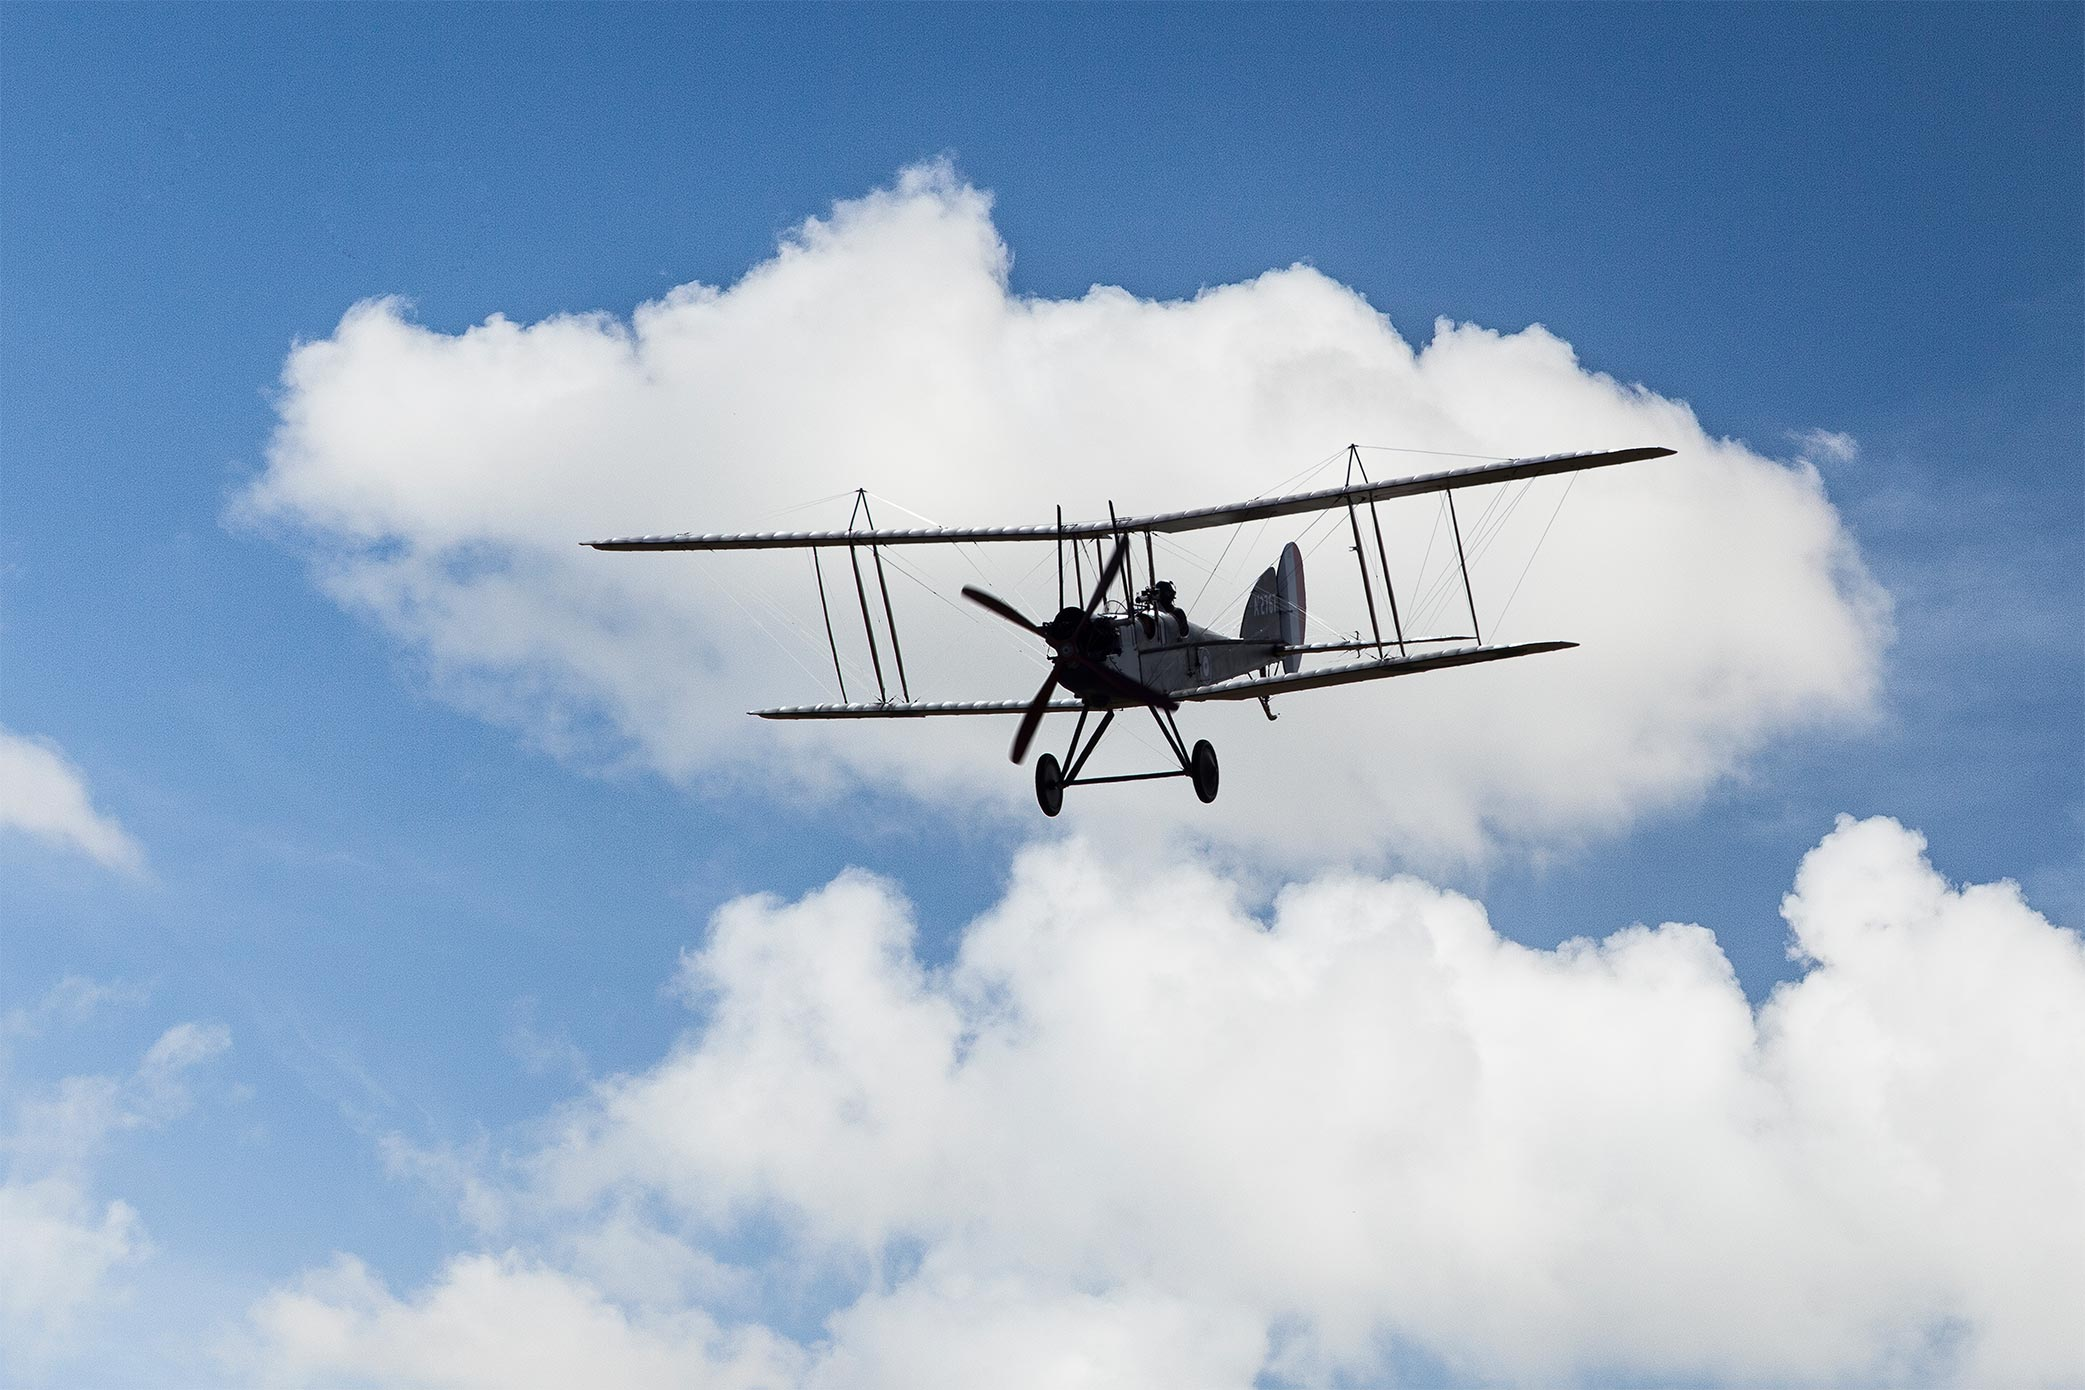 Be2 aircraft in flight